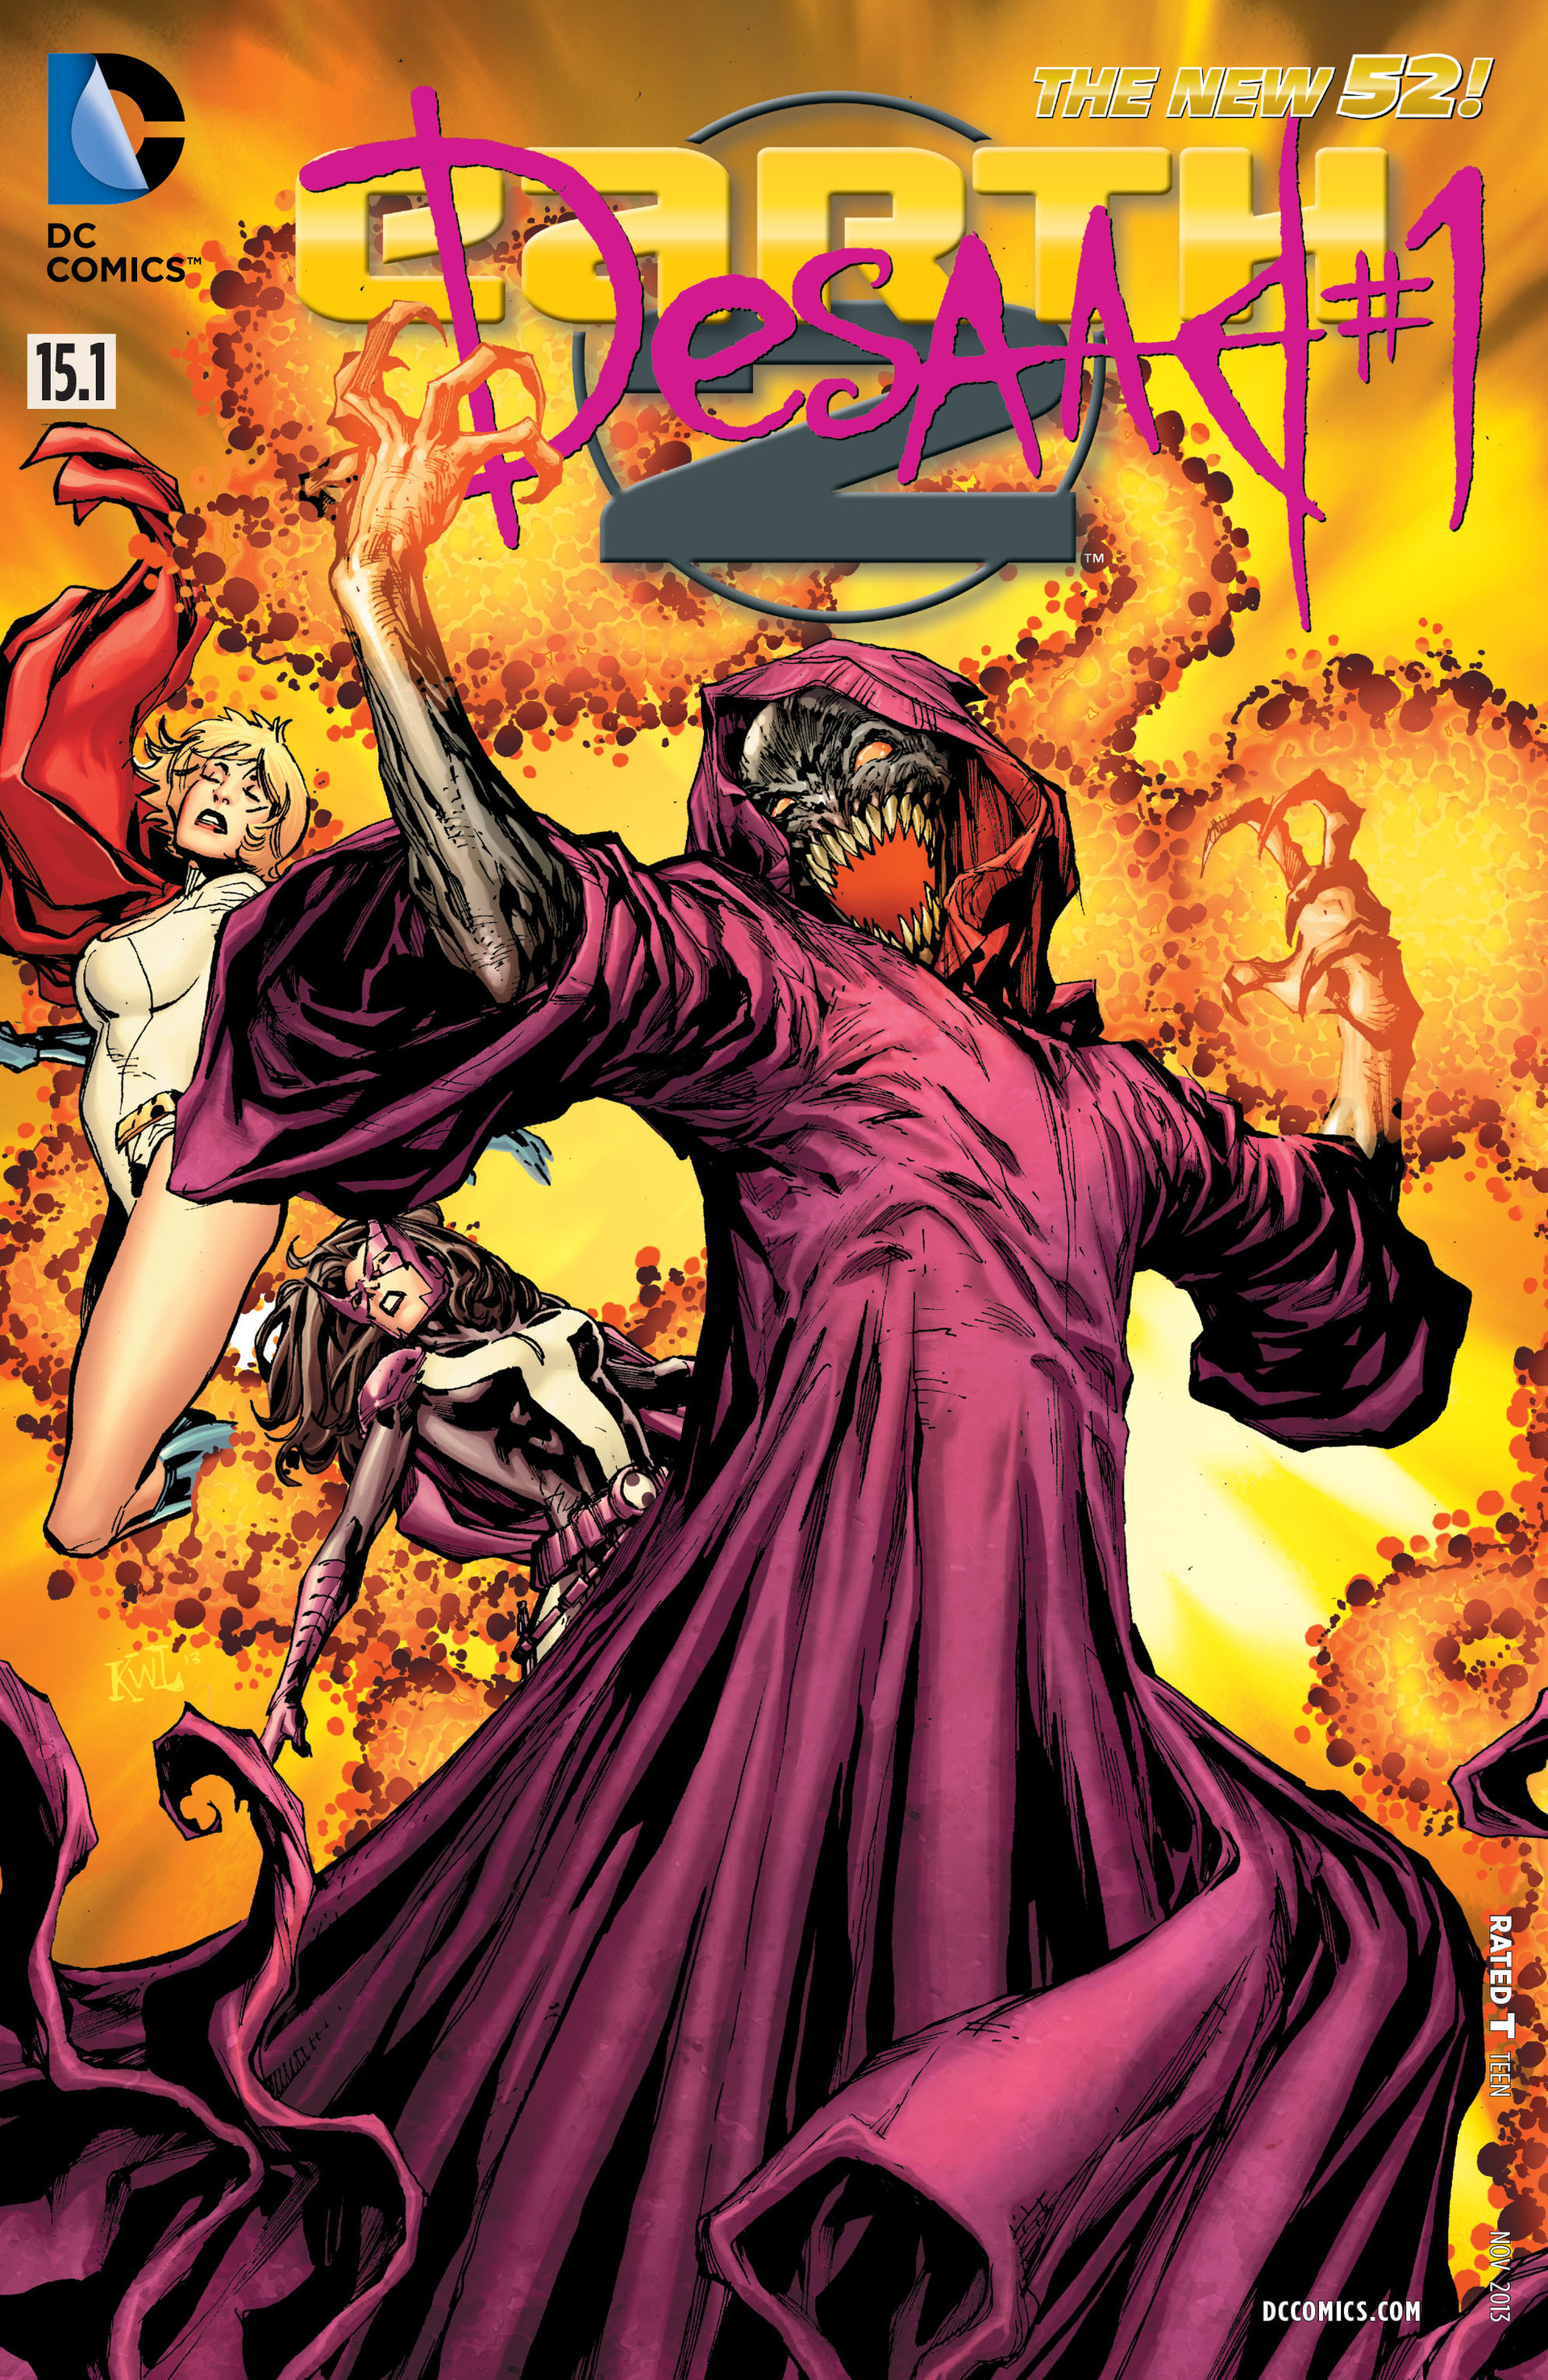 Earth 2 0015.1 Desaad